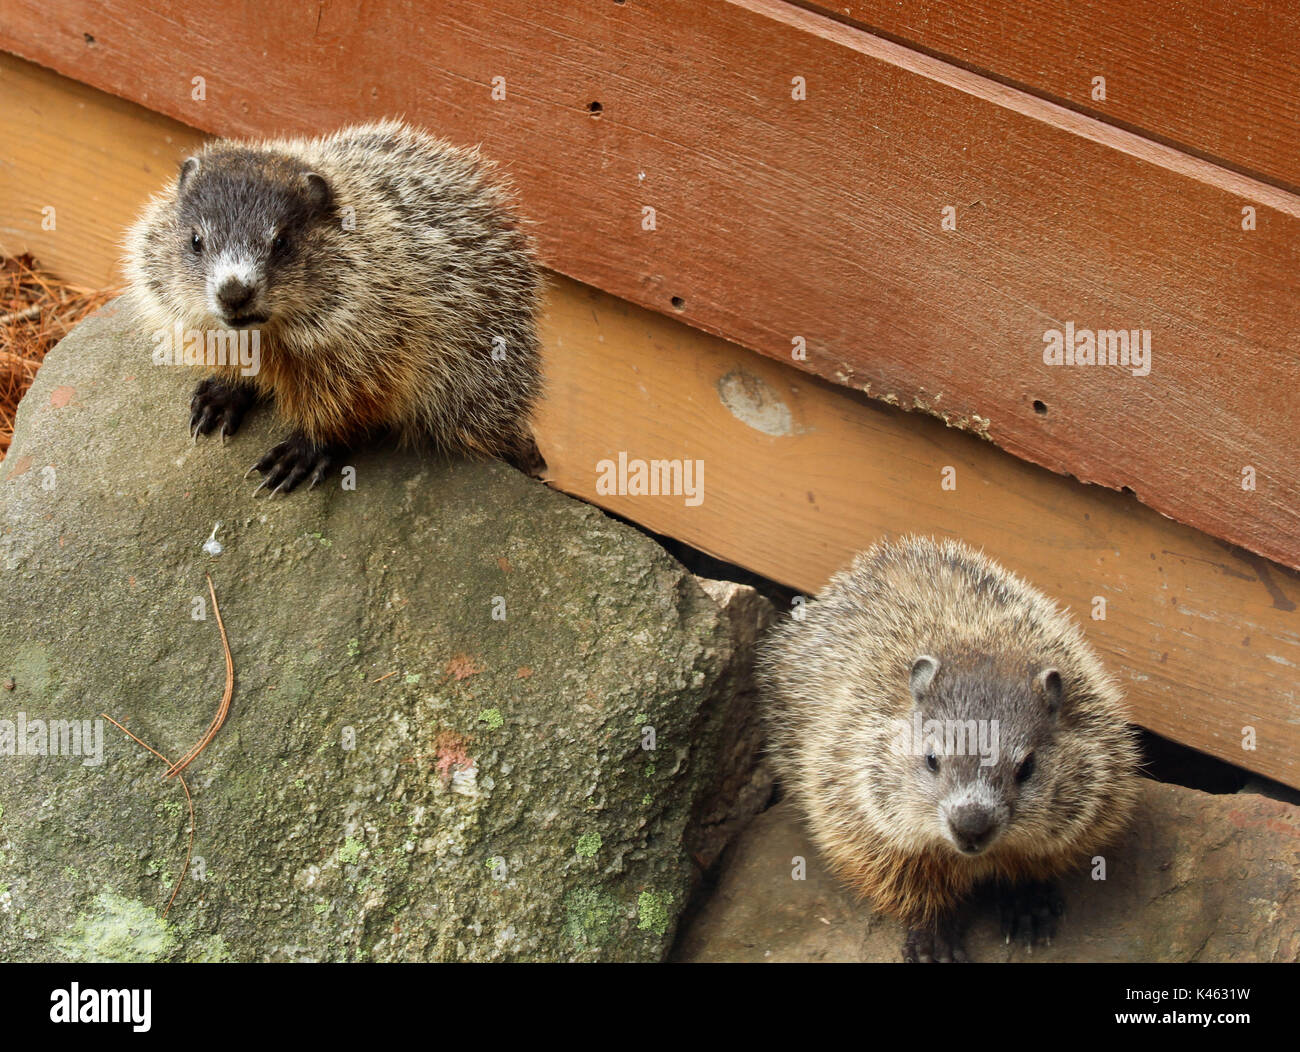 A pair of juvenile groundhogs (Marmota monax) outside their underground burrow beneath a backyard shed in late Spring - Stock Image